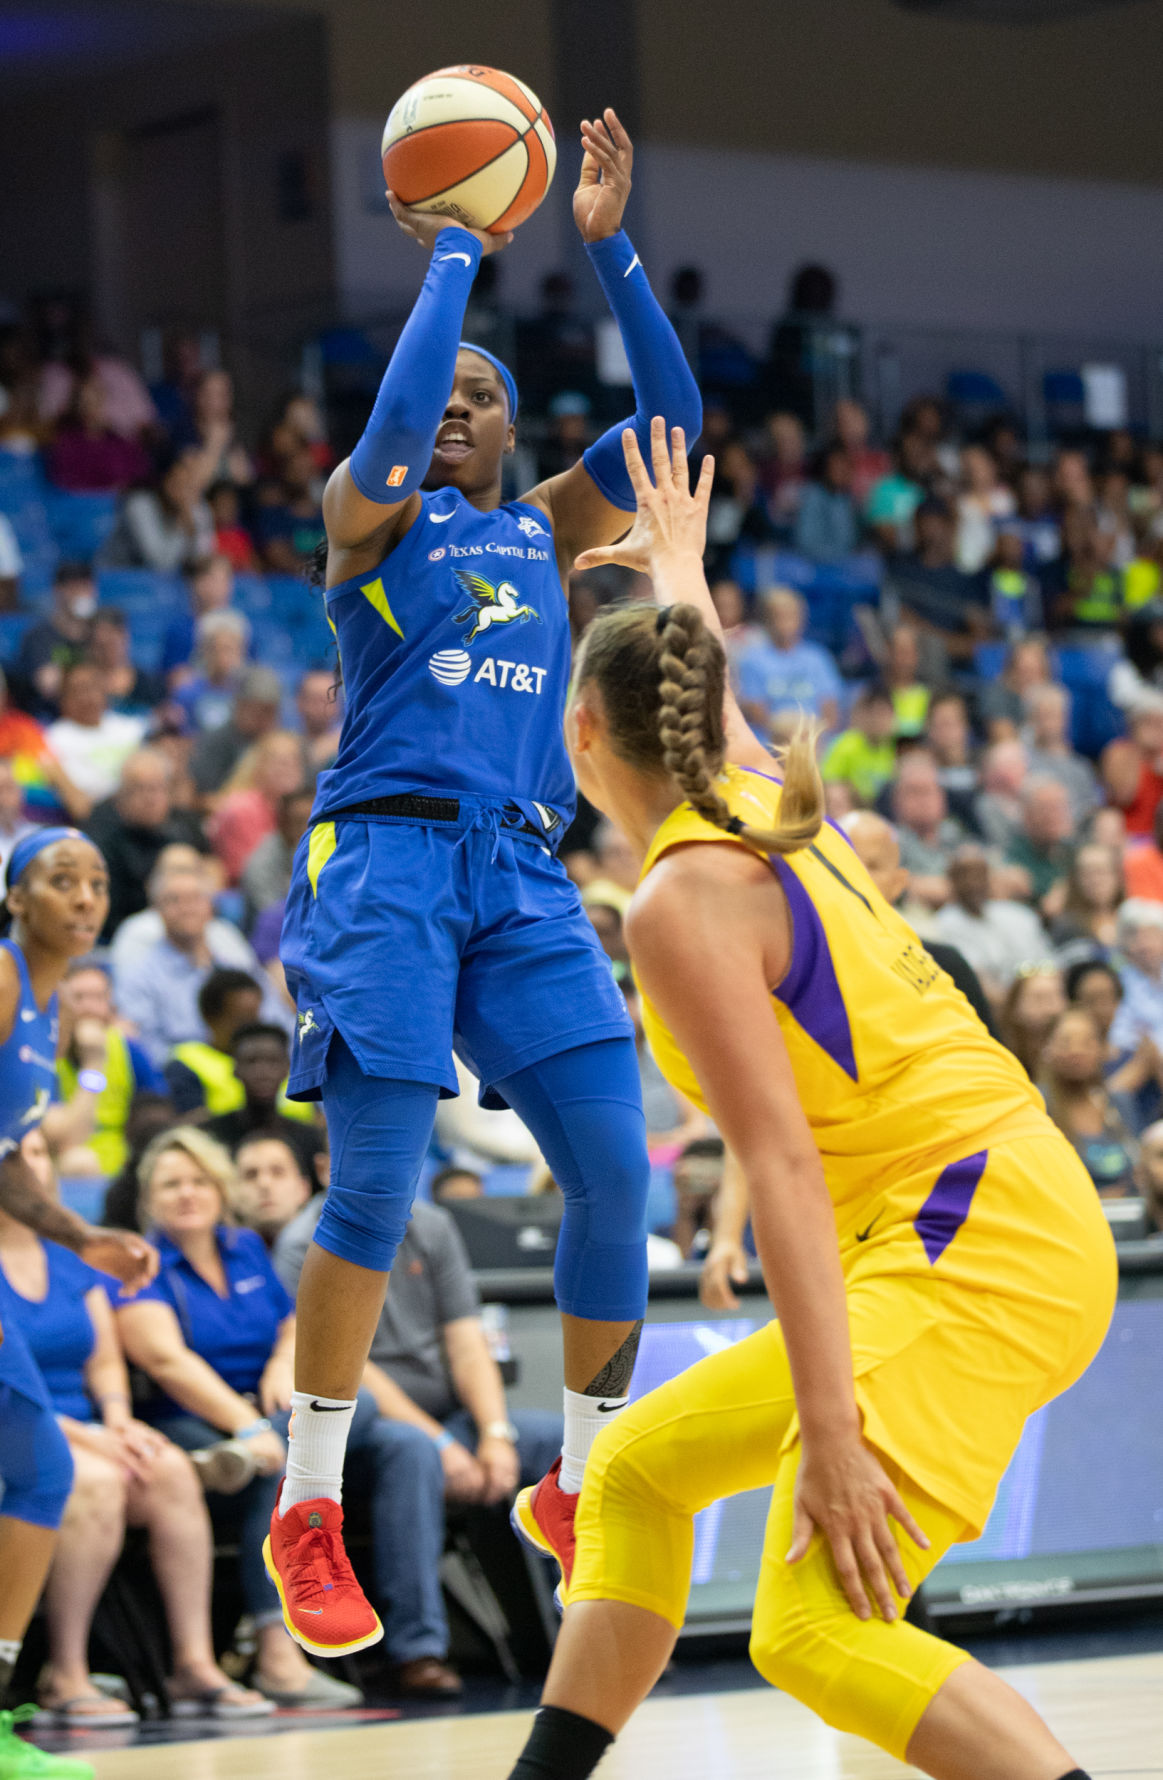 Rookie lights up court as shorthanded Dallas Wings top Los Angeles Sparks